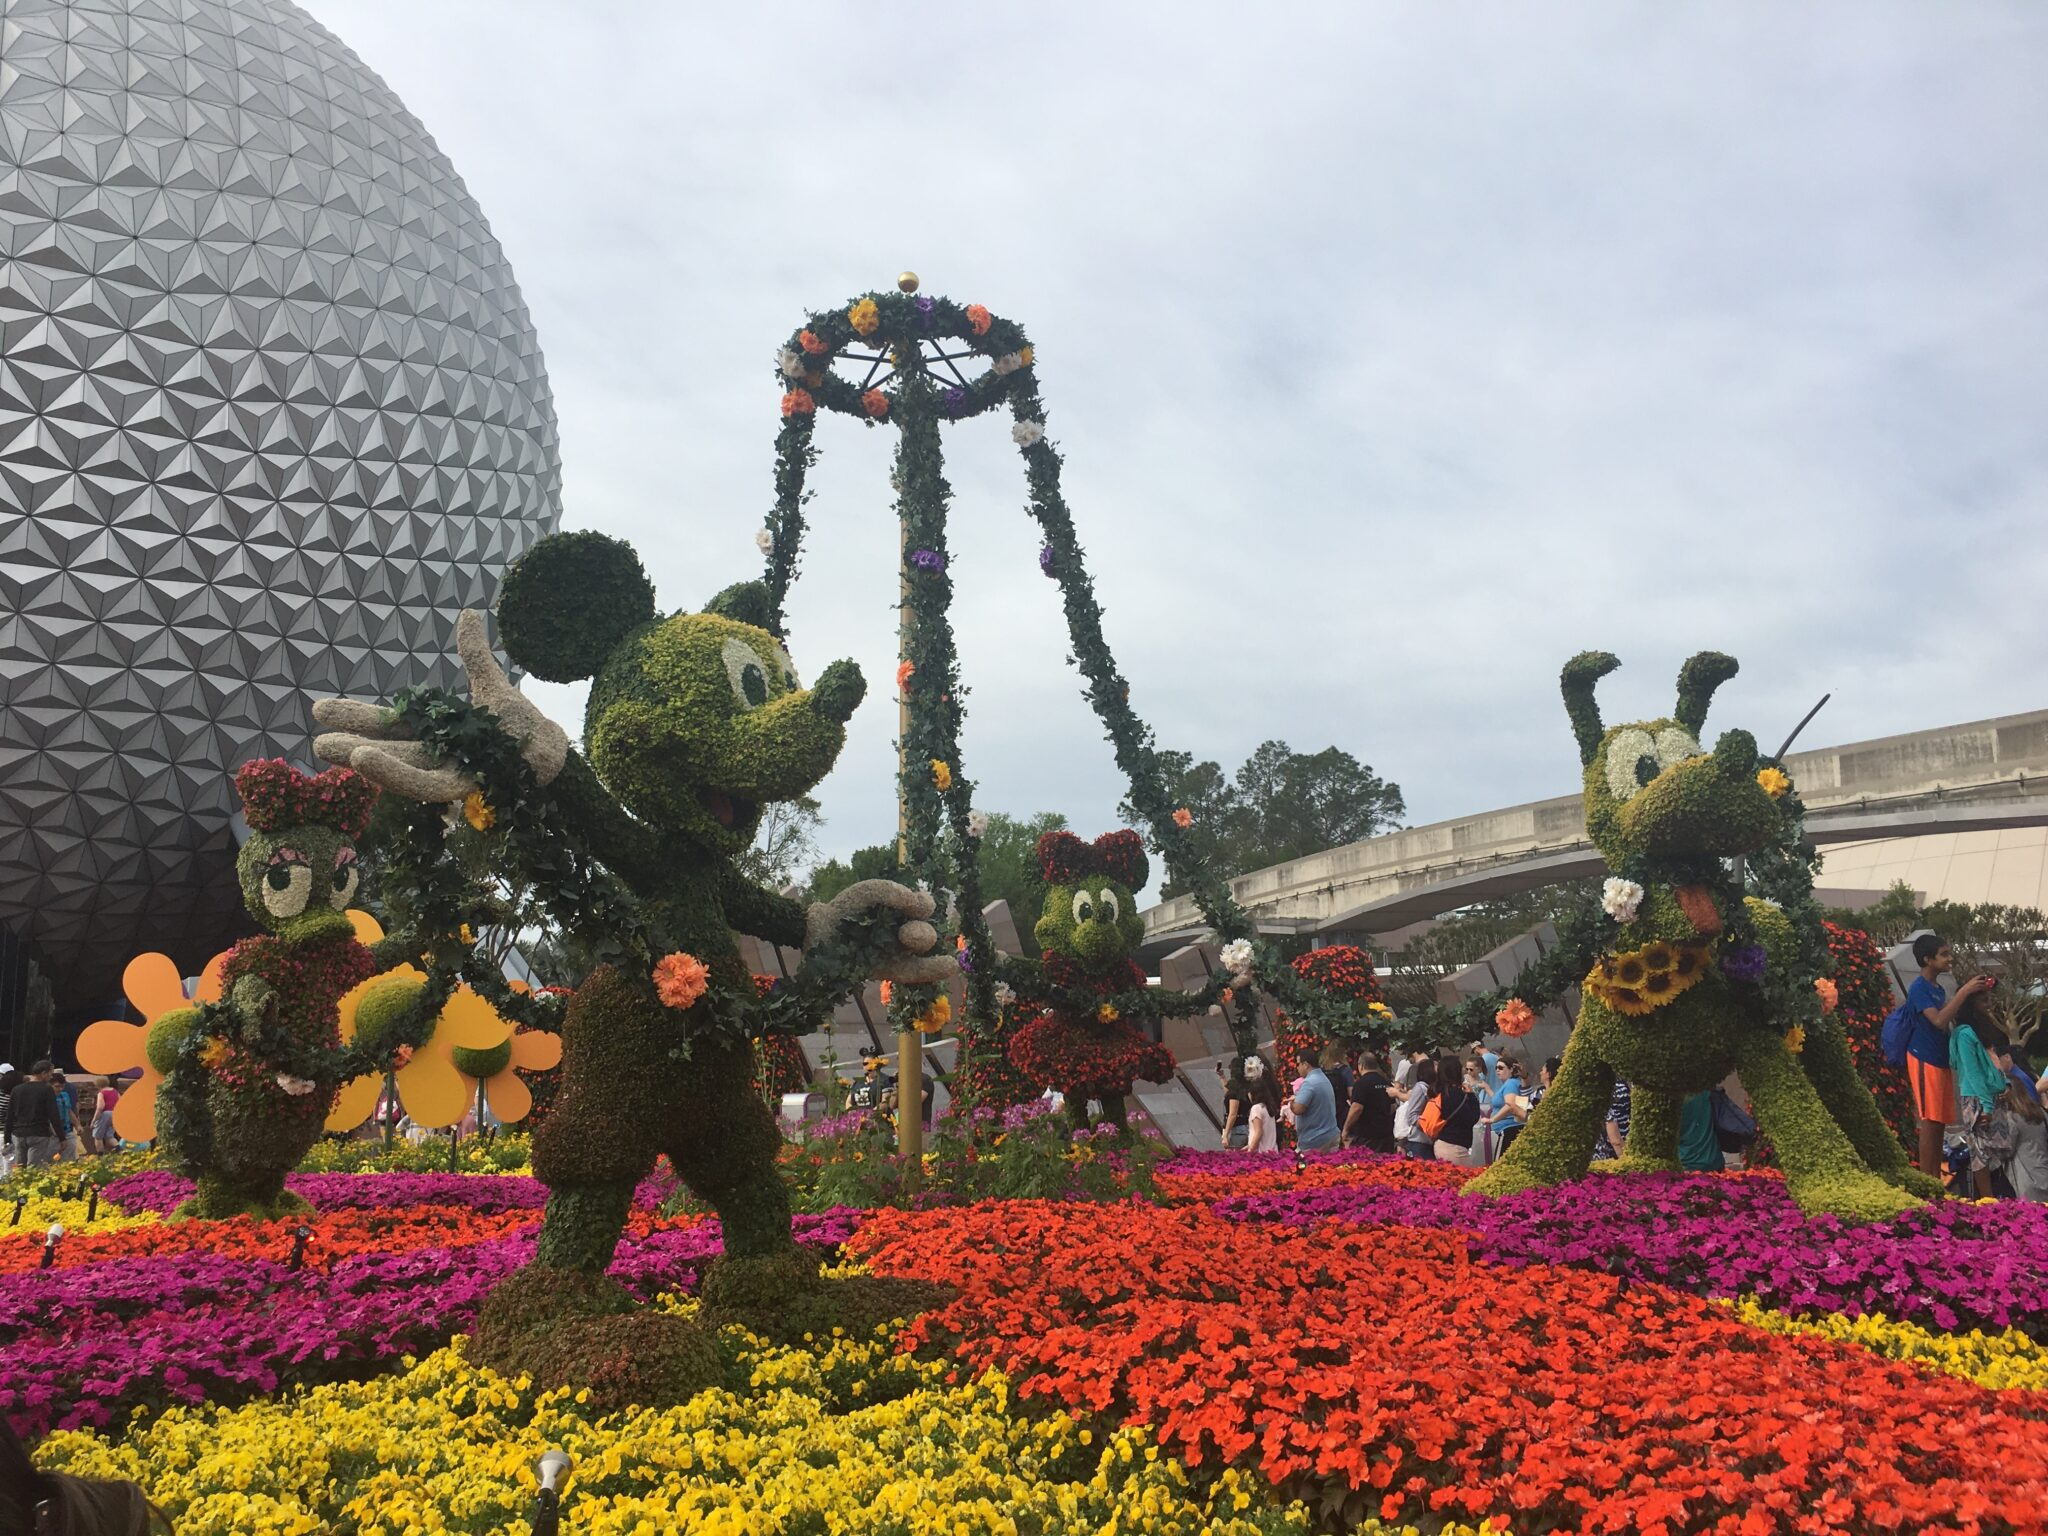 A day at the 2017 epcot flower and garden festival tips - Epcot flower and garden festival 2017 ...